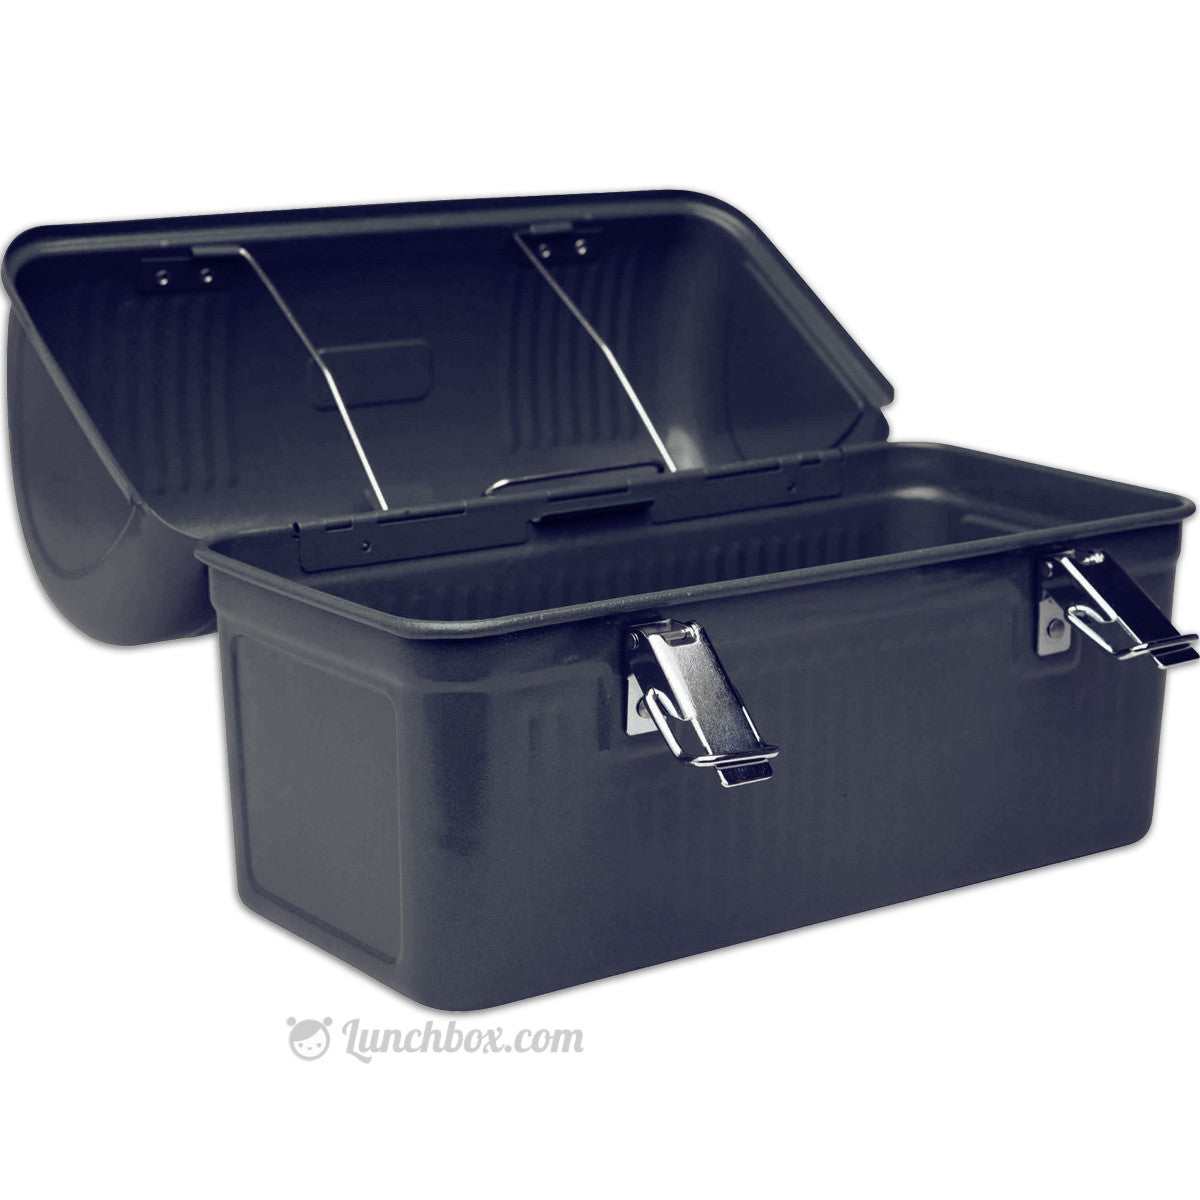 Construction Worker Black Dome Lunch Box | Lunchbox.com